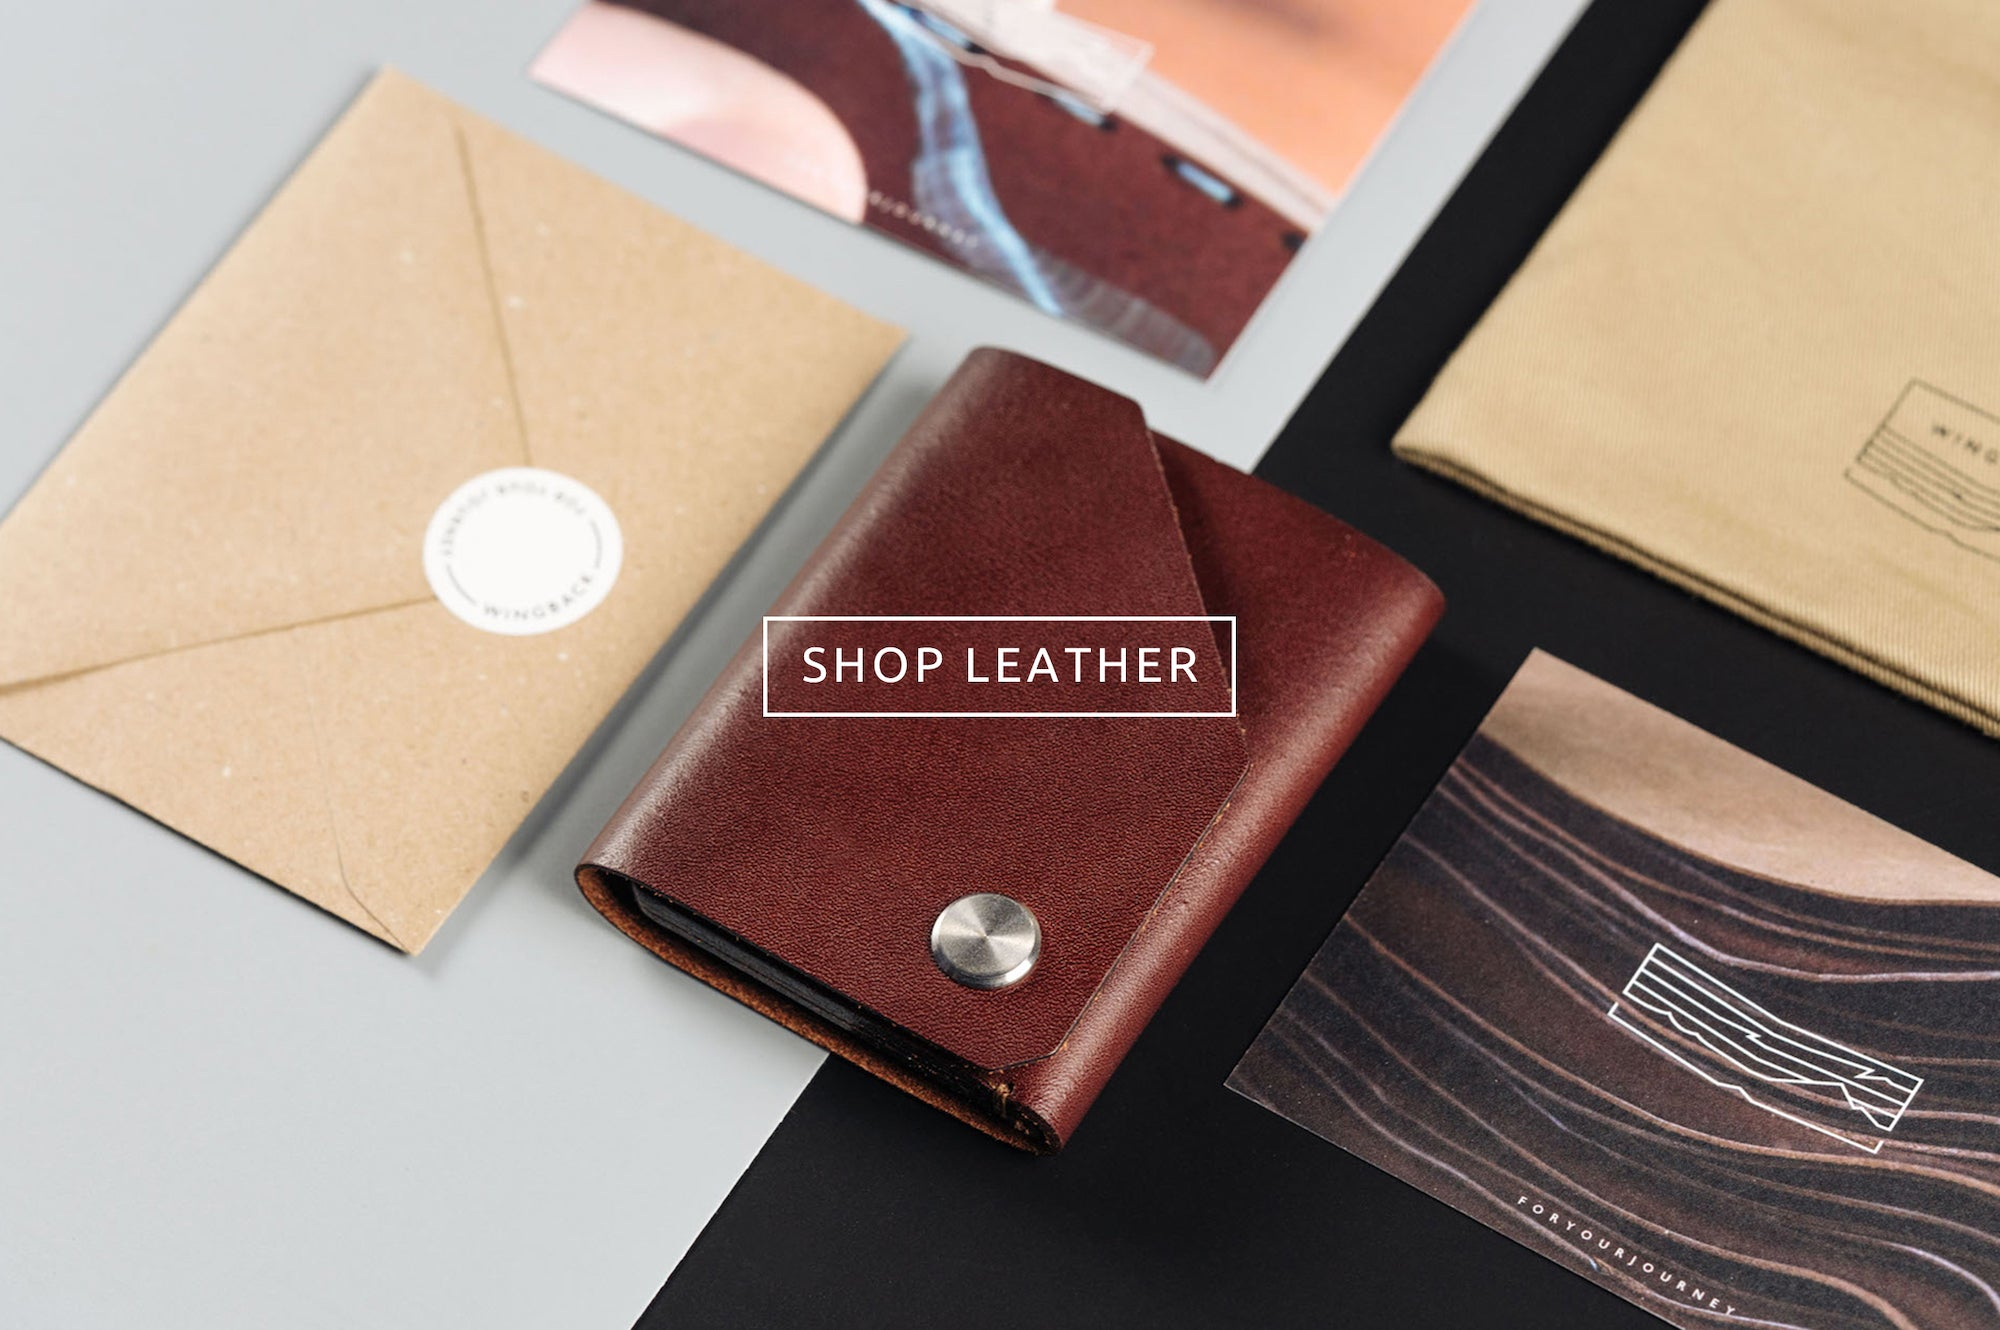 Wingback - shop leather wallets and card holders